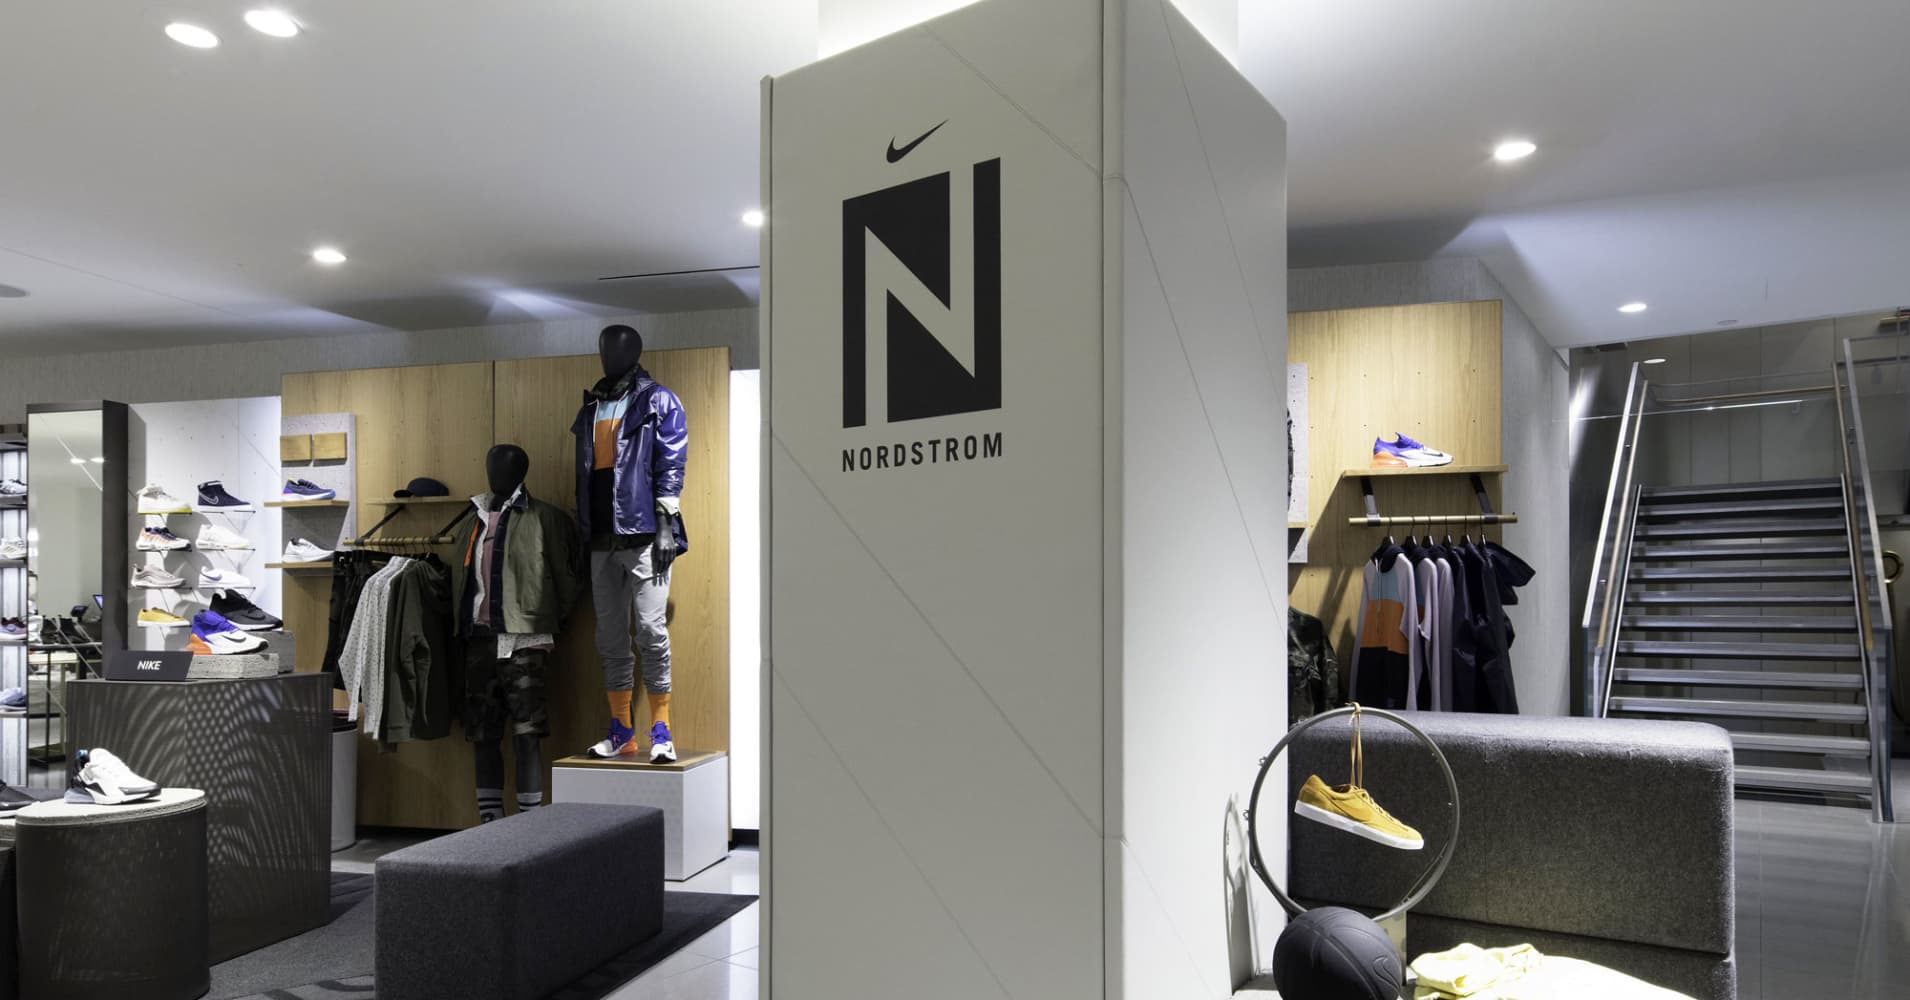 nordstrom 39 s first nyc store offers cocktails anytime pick up even a shave. Black Bedroom Furniture Sets. Home Design Ideas